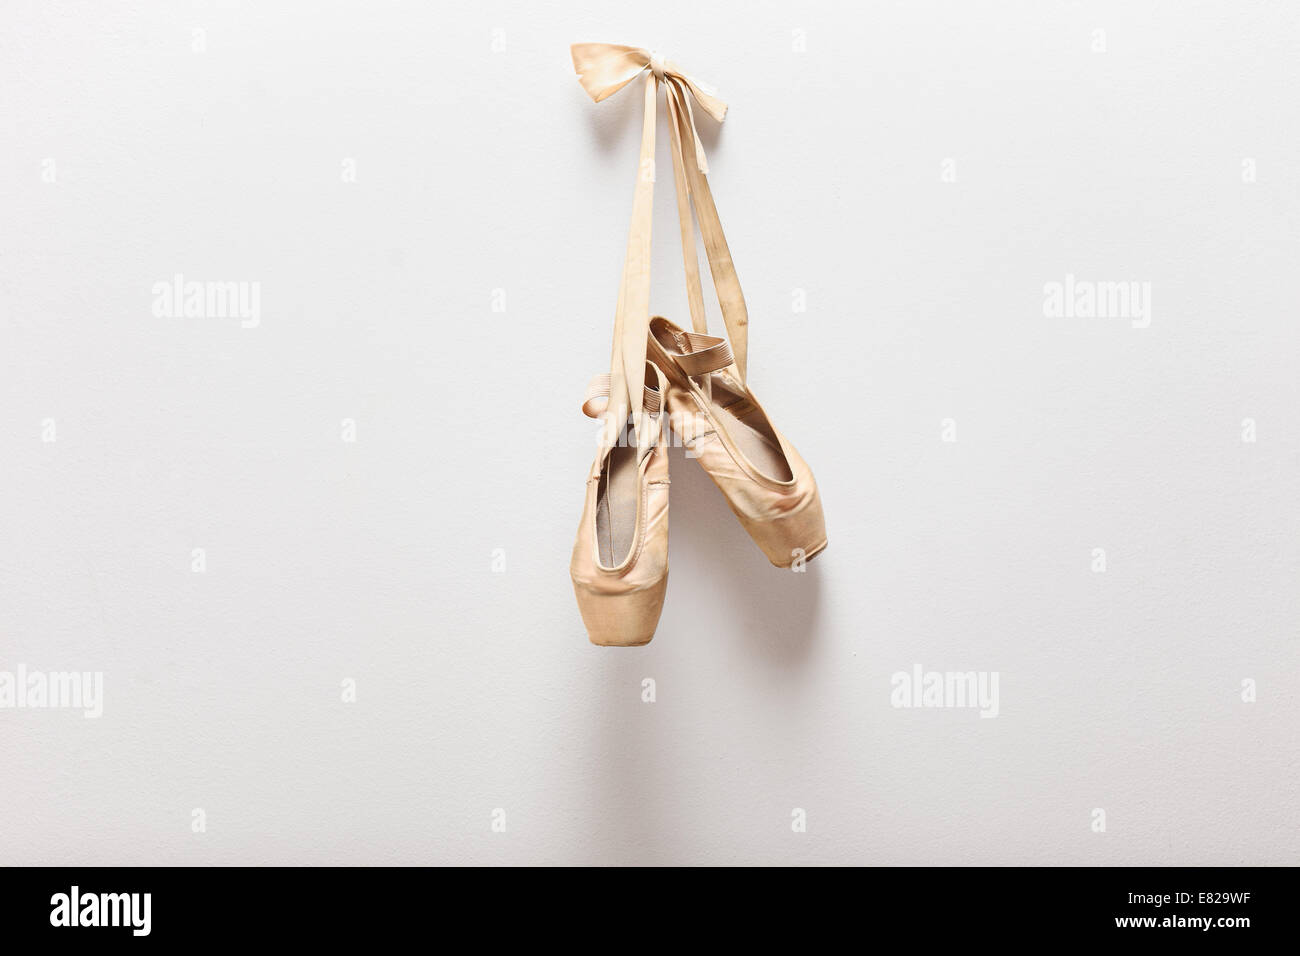 Pair of old silky ballet shoes hanging on a wall - Stock Image